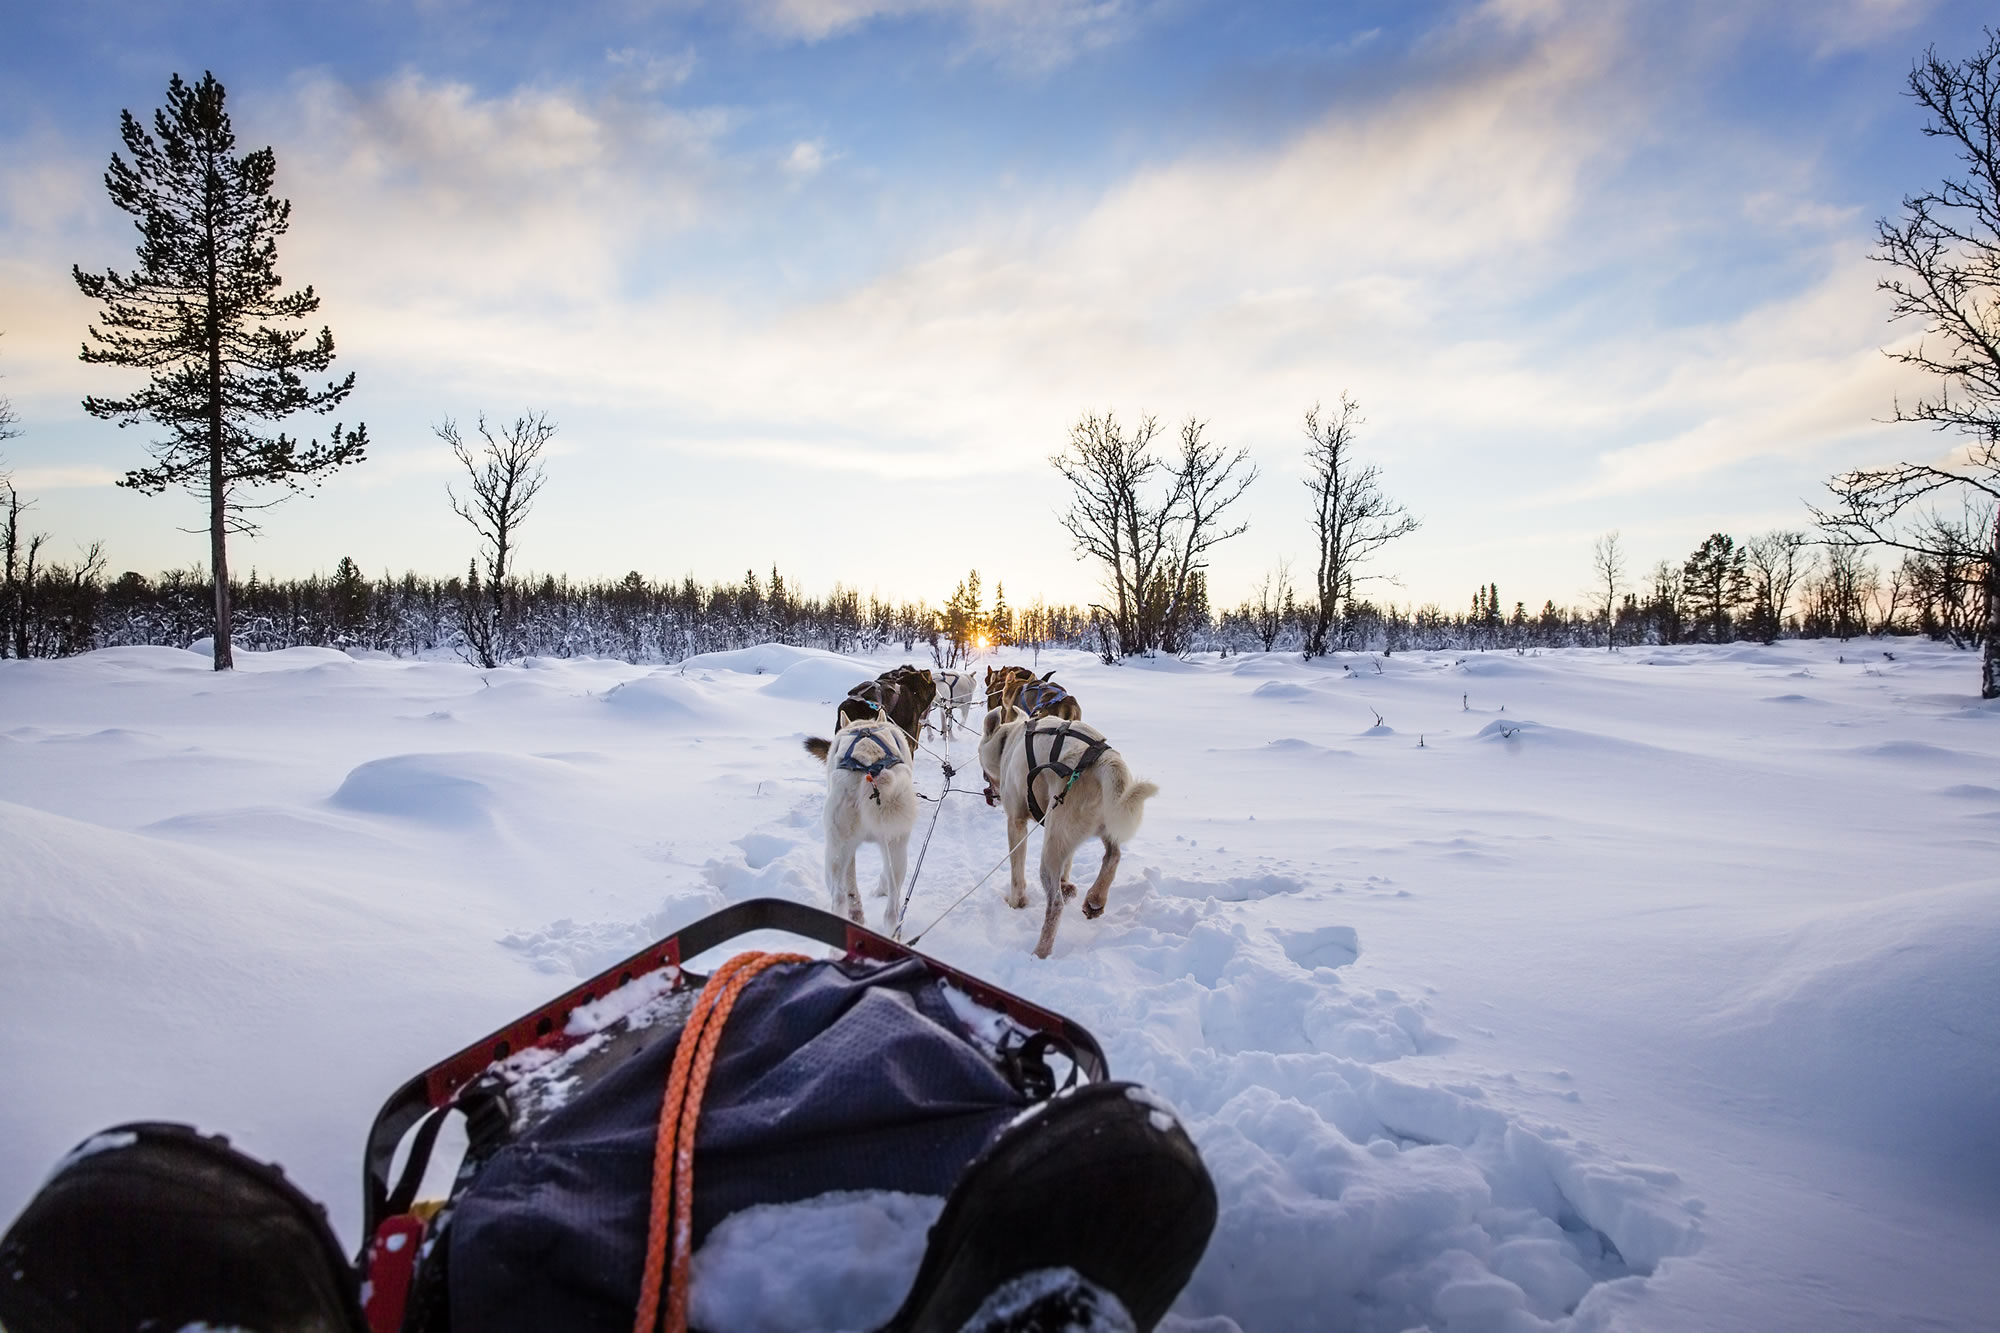 Go Dog Sledding With Huskies